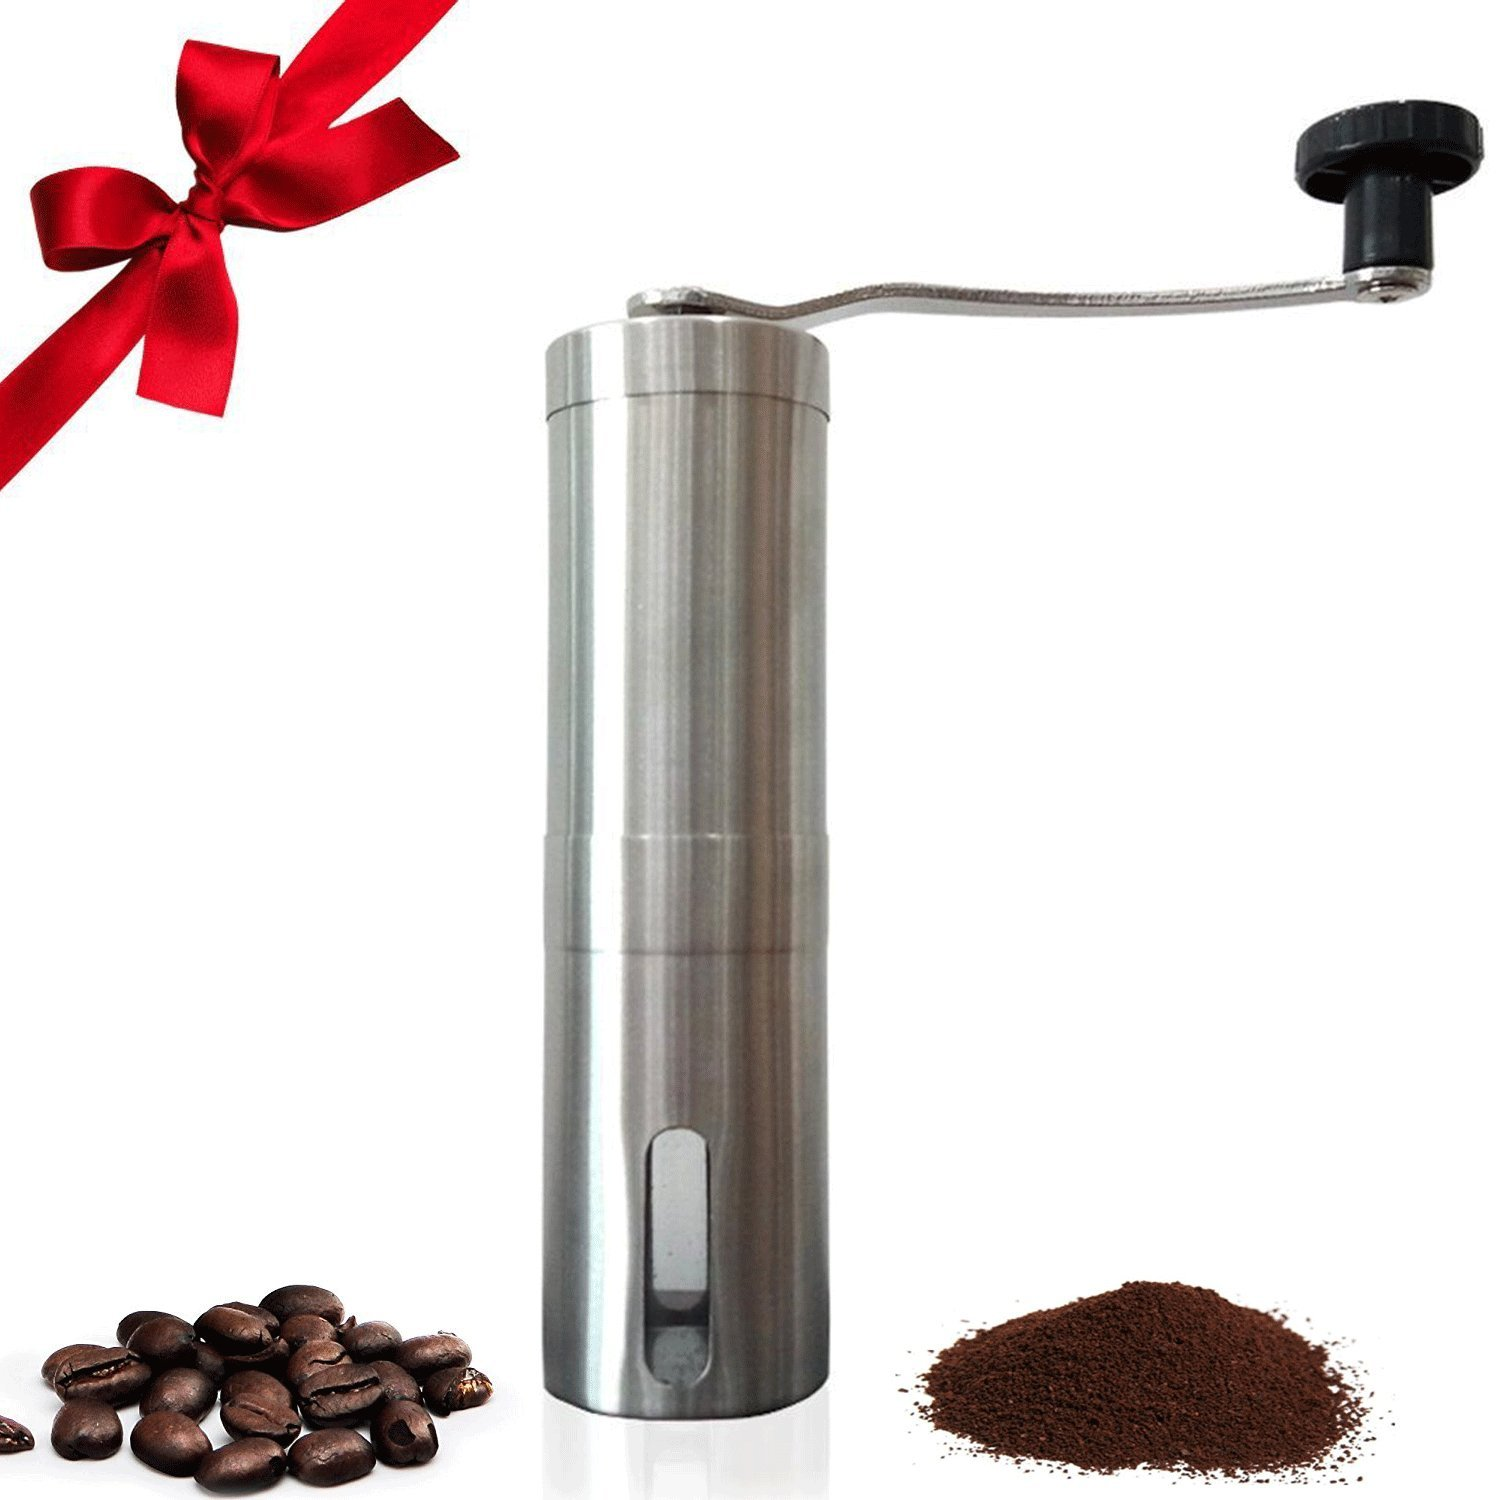 Manual Coffee Bean Grinder Portable Mini Well made Conical Burr Mill Brushed Stainless Steel Coffee Maker Precision Brewing For Camping Kitchen Road Trip